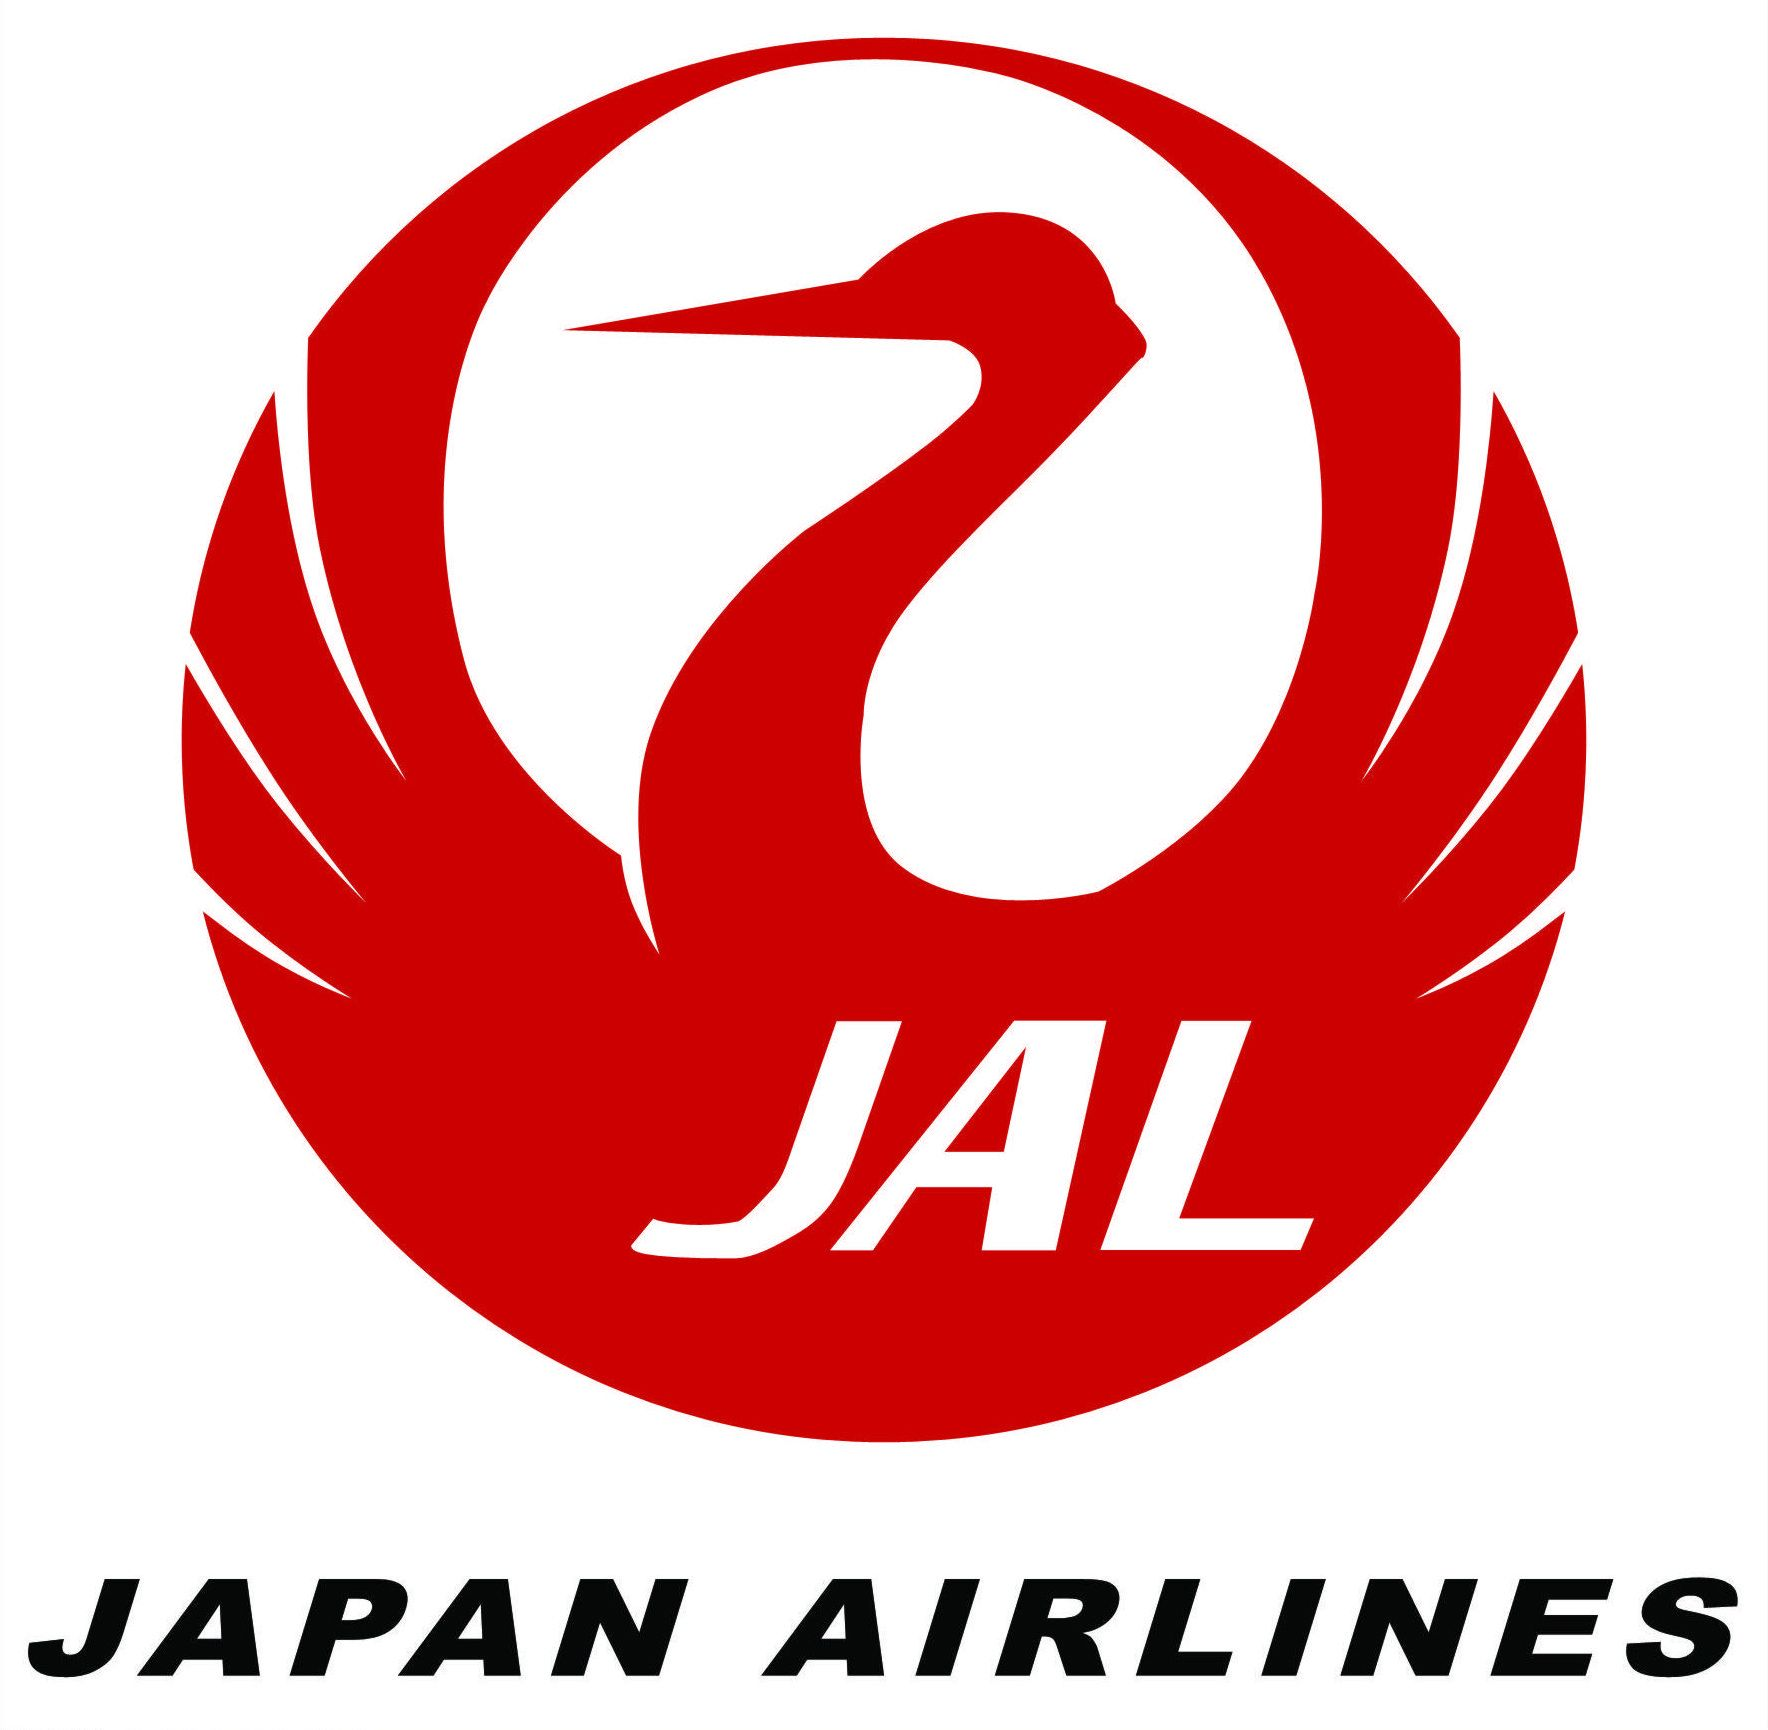 the official logo of japan airlines japan pinterest